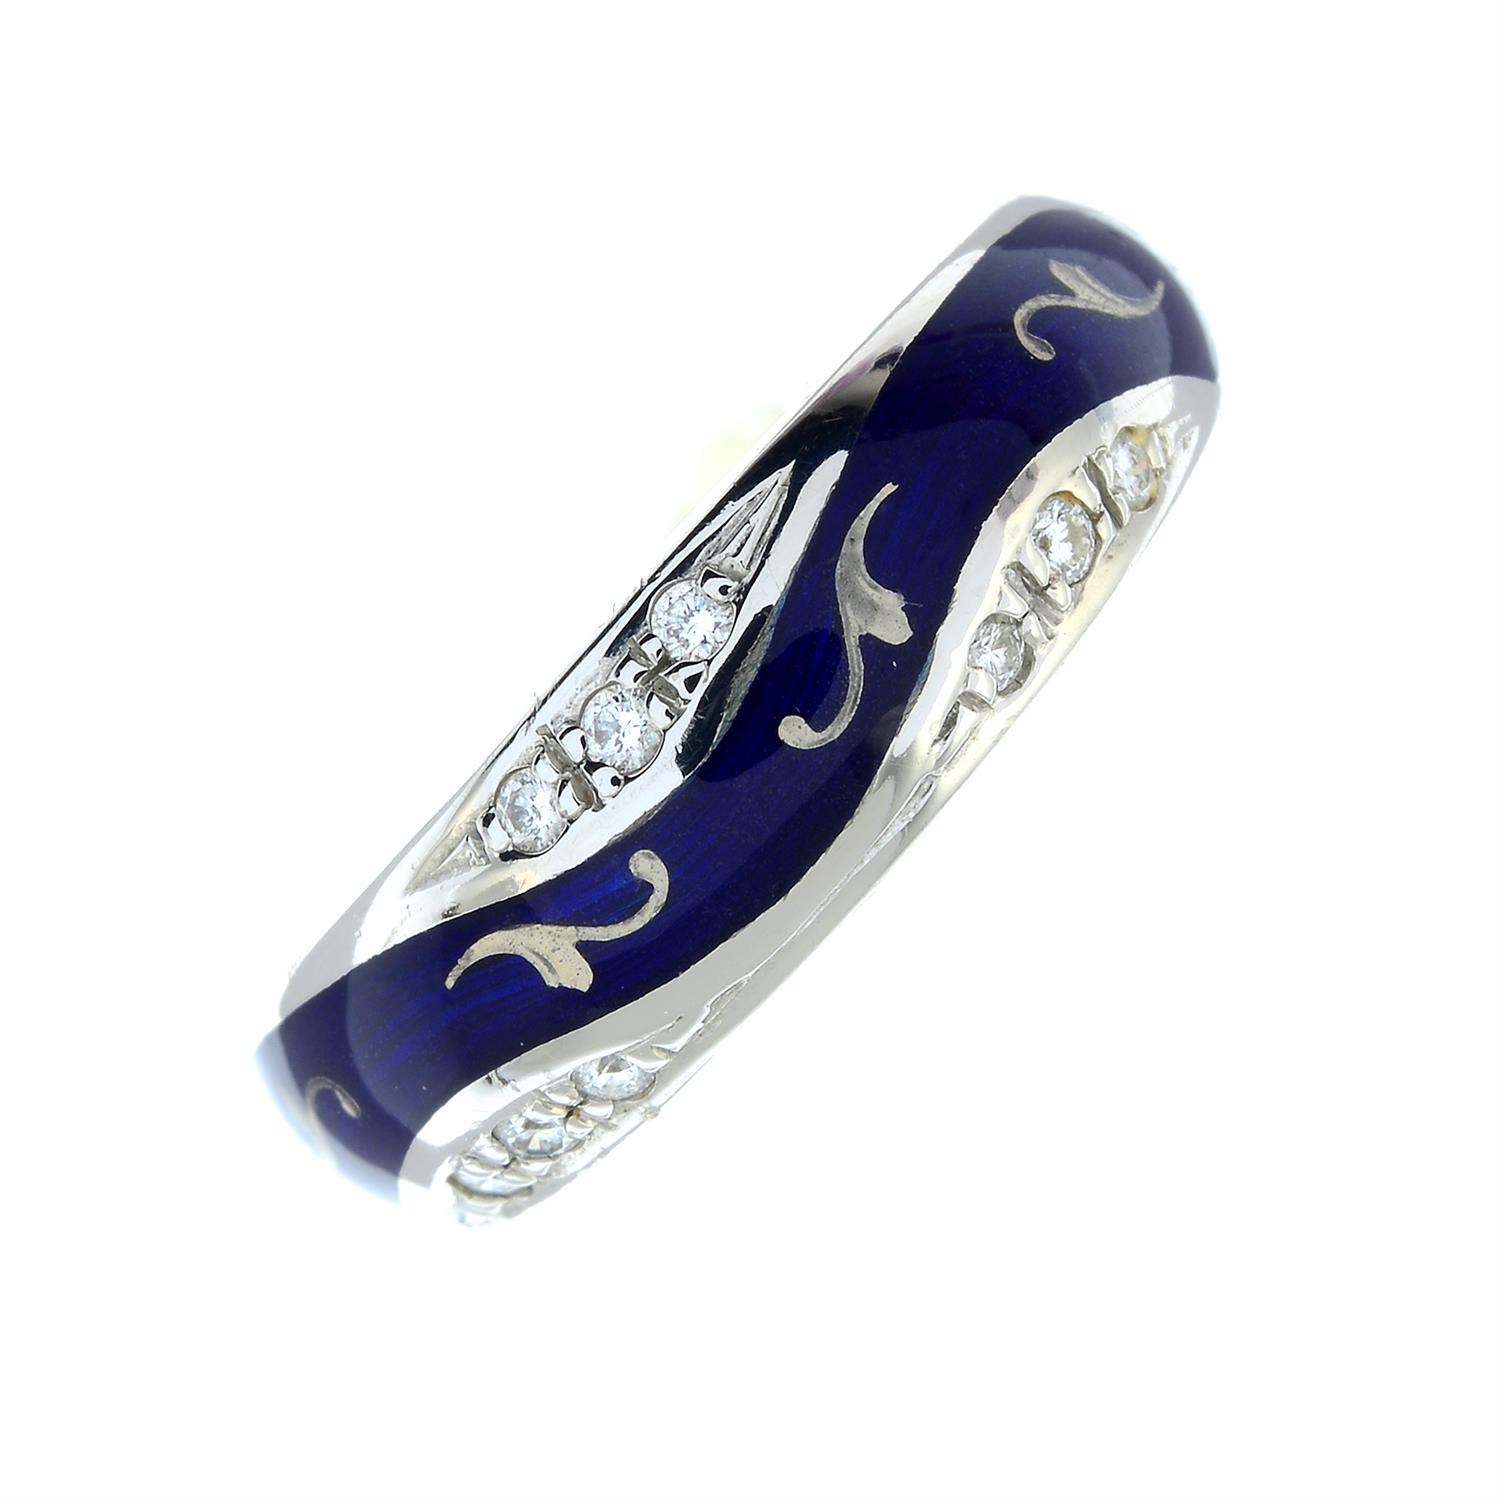 A limited edition 18ct gold diamond and blue enamel ring, by Fabergé. - Image 2 of 6